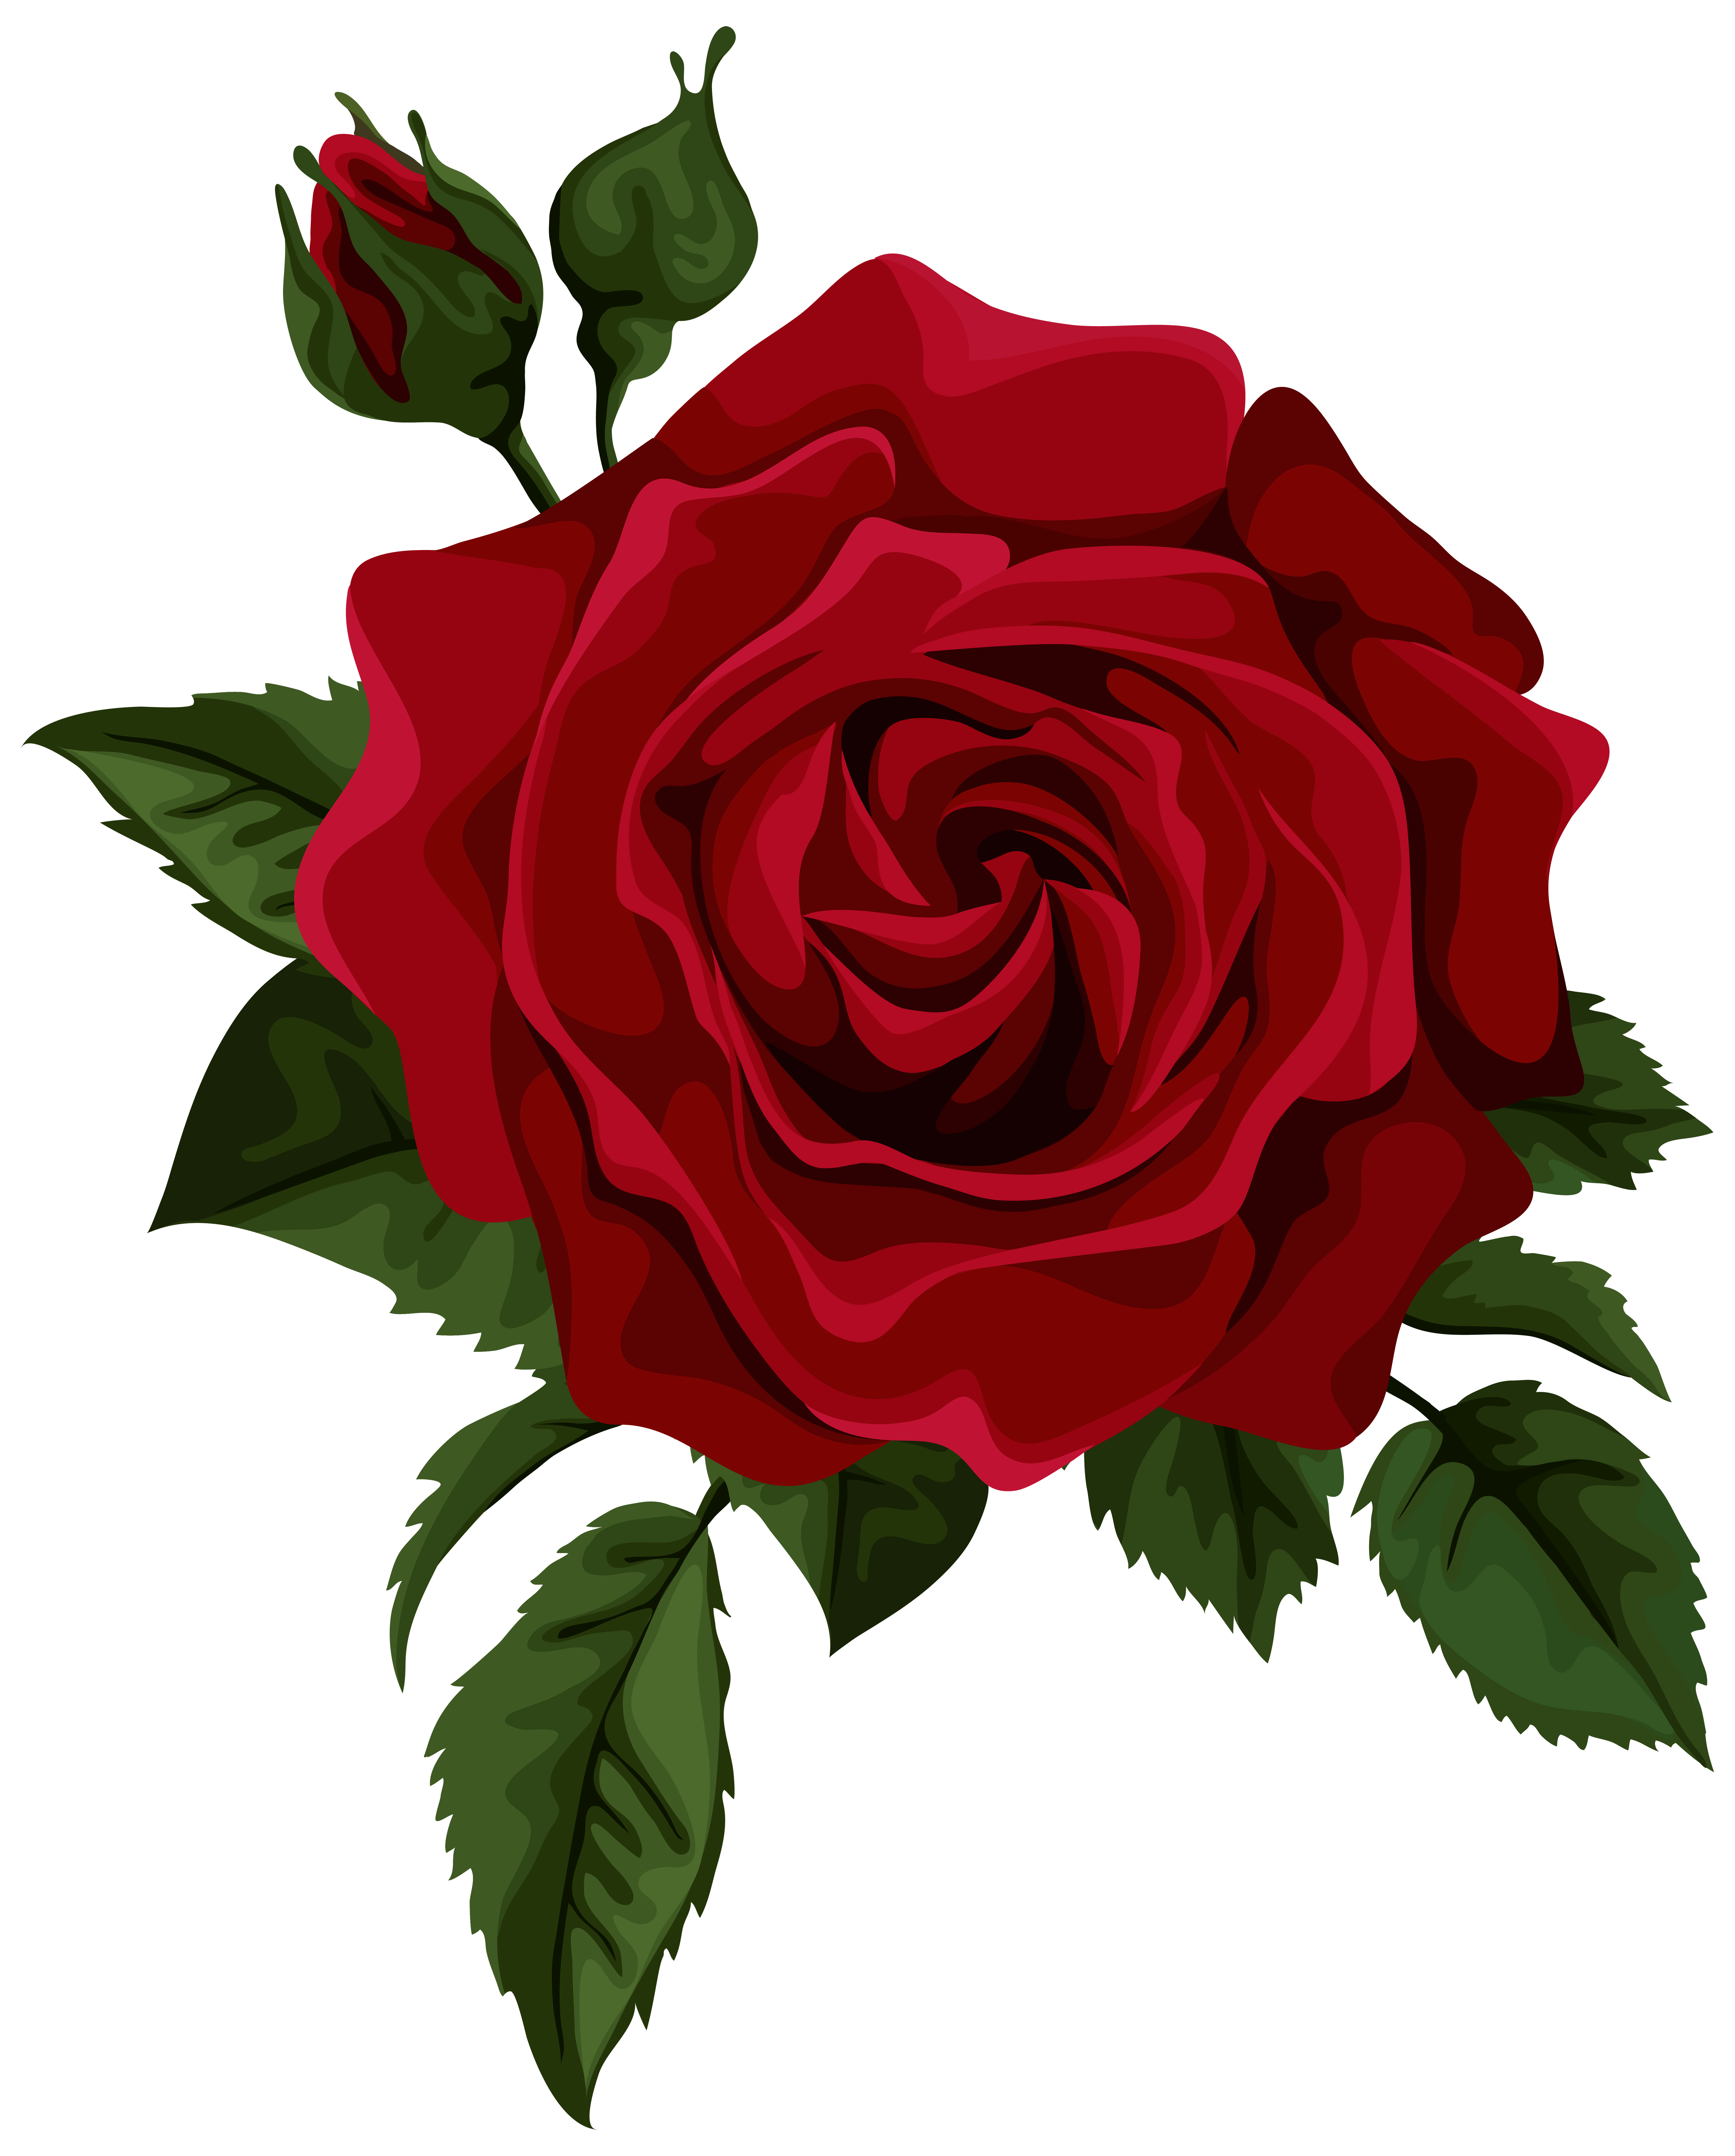 Roses Red Rose With Bud Transparent Clip Art Picture Rose Art